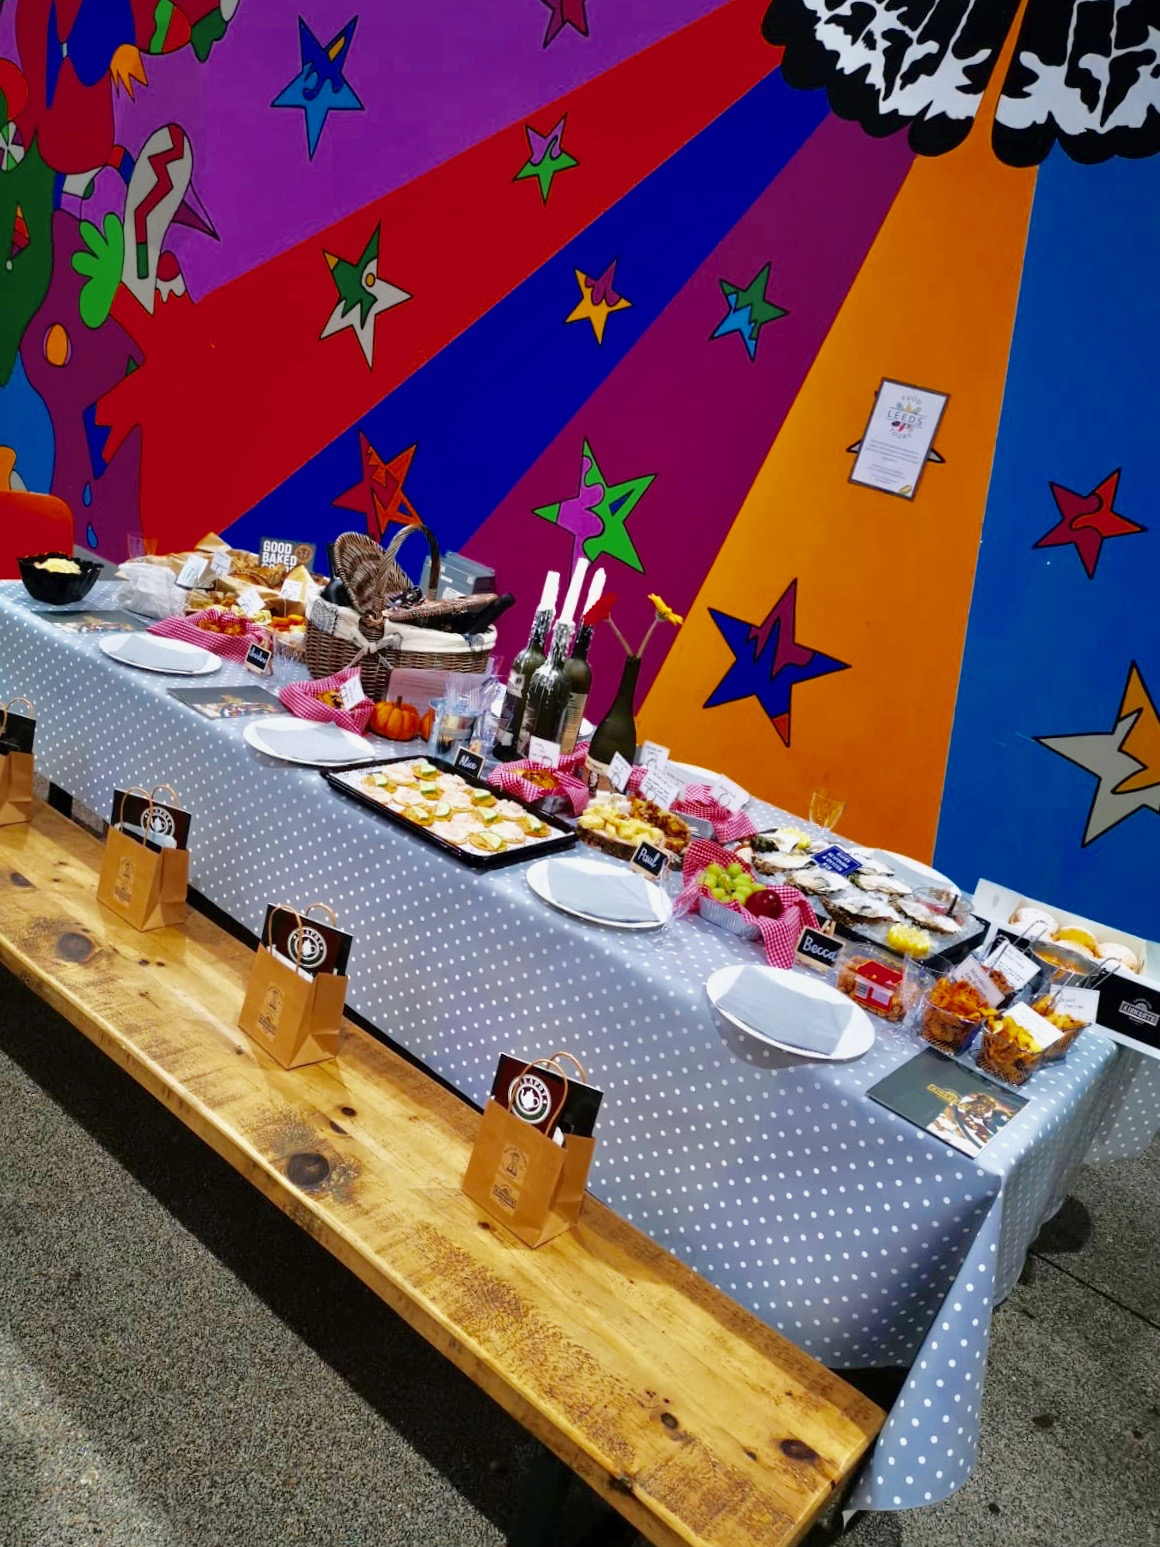 Table in the market with food donated from various stall holders for the launch of Leeds Food Tours. On a polkadot table cloth are candles, a picnic basket, flowers and all sorts of foods including oysters, bread, cheeses and cakes